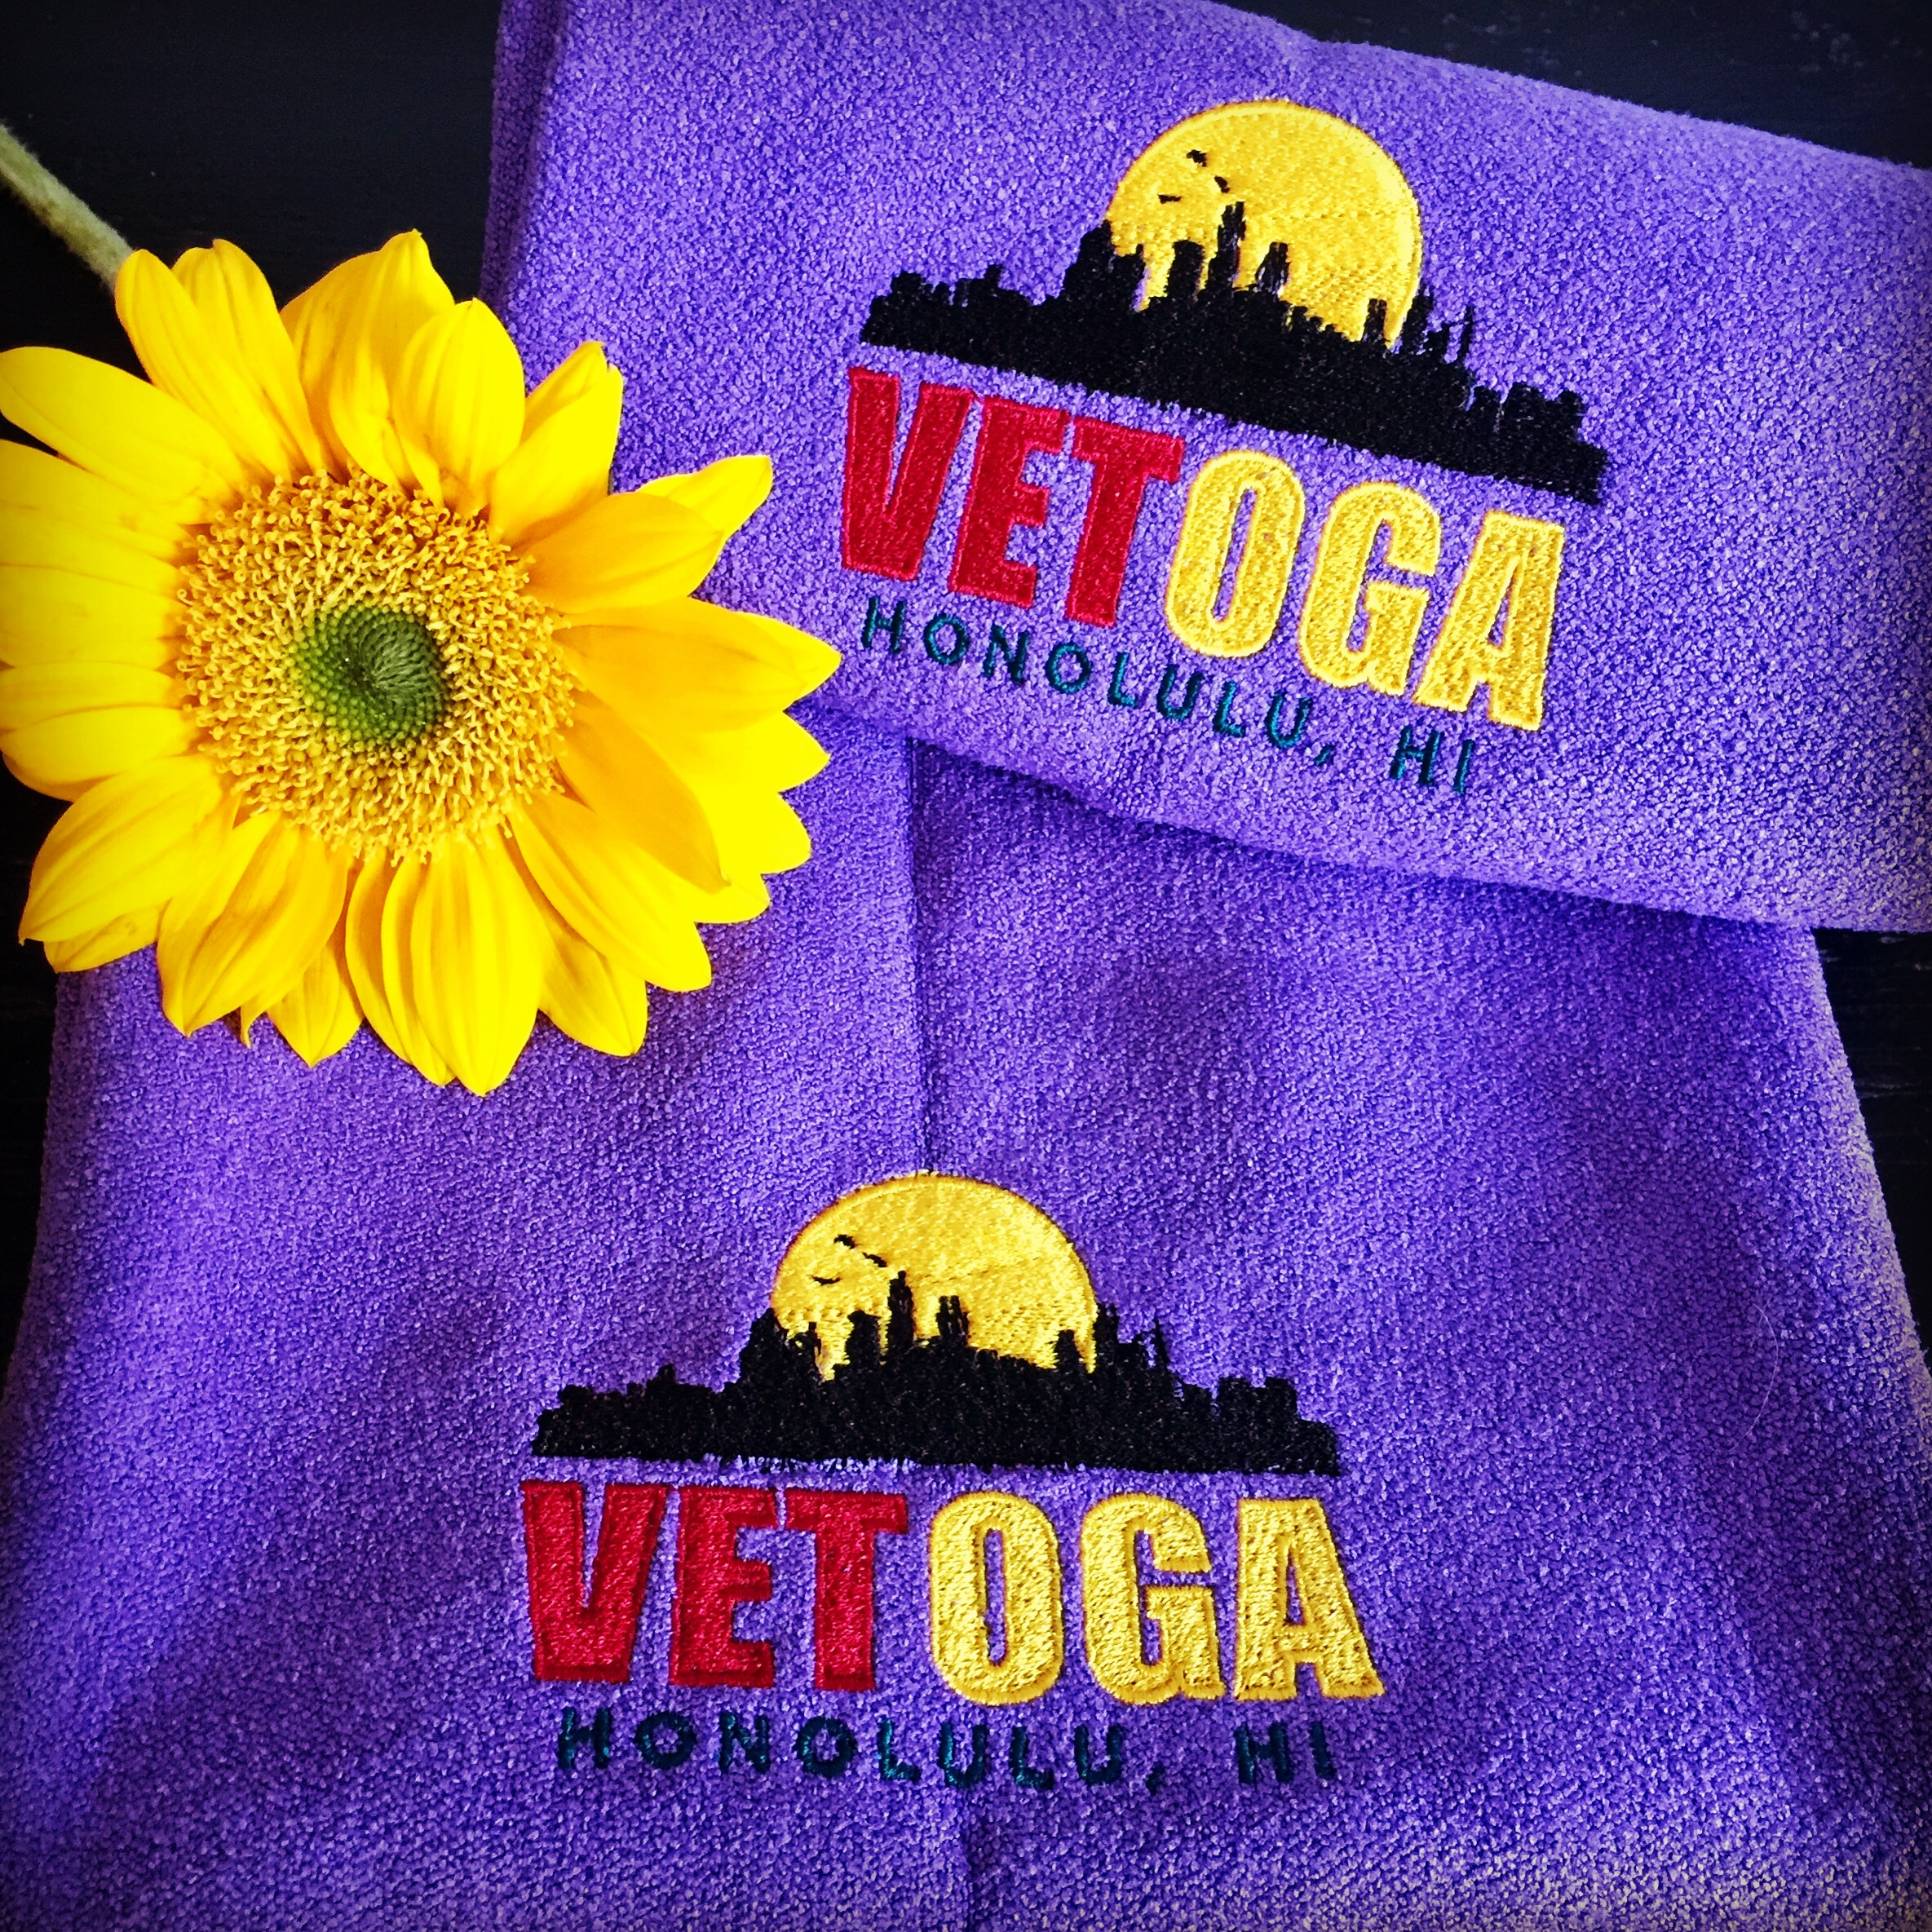 Vetoga HI yoga towels.JPG